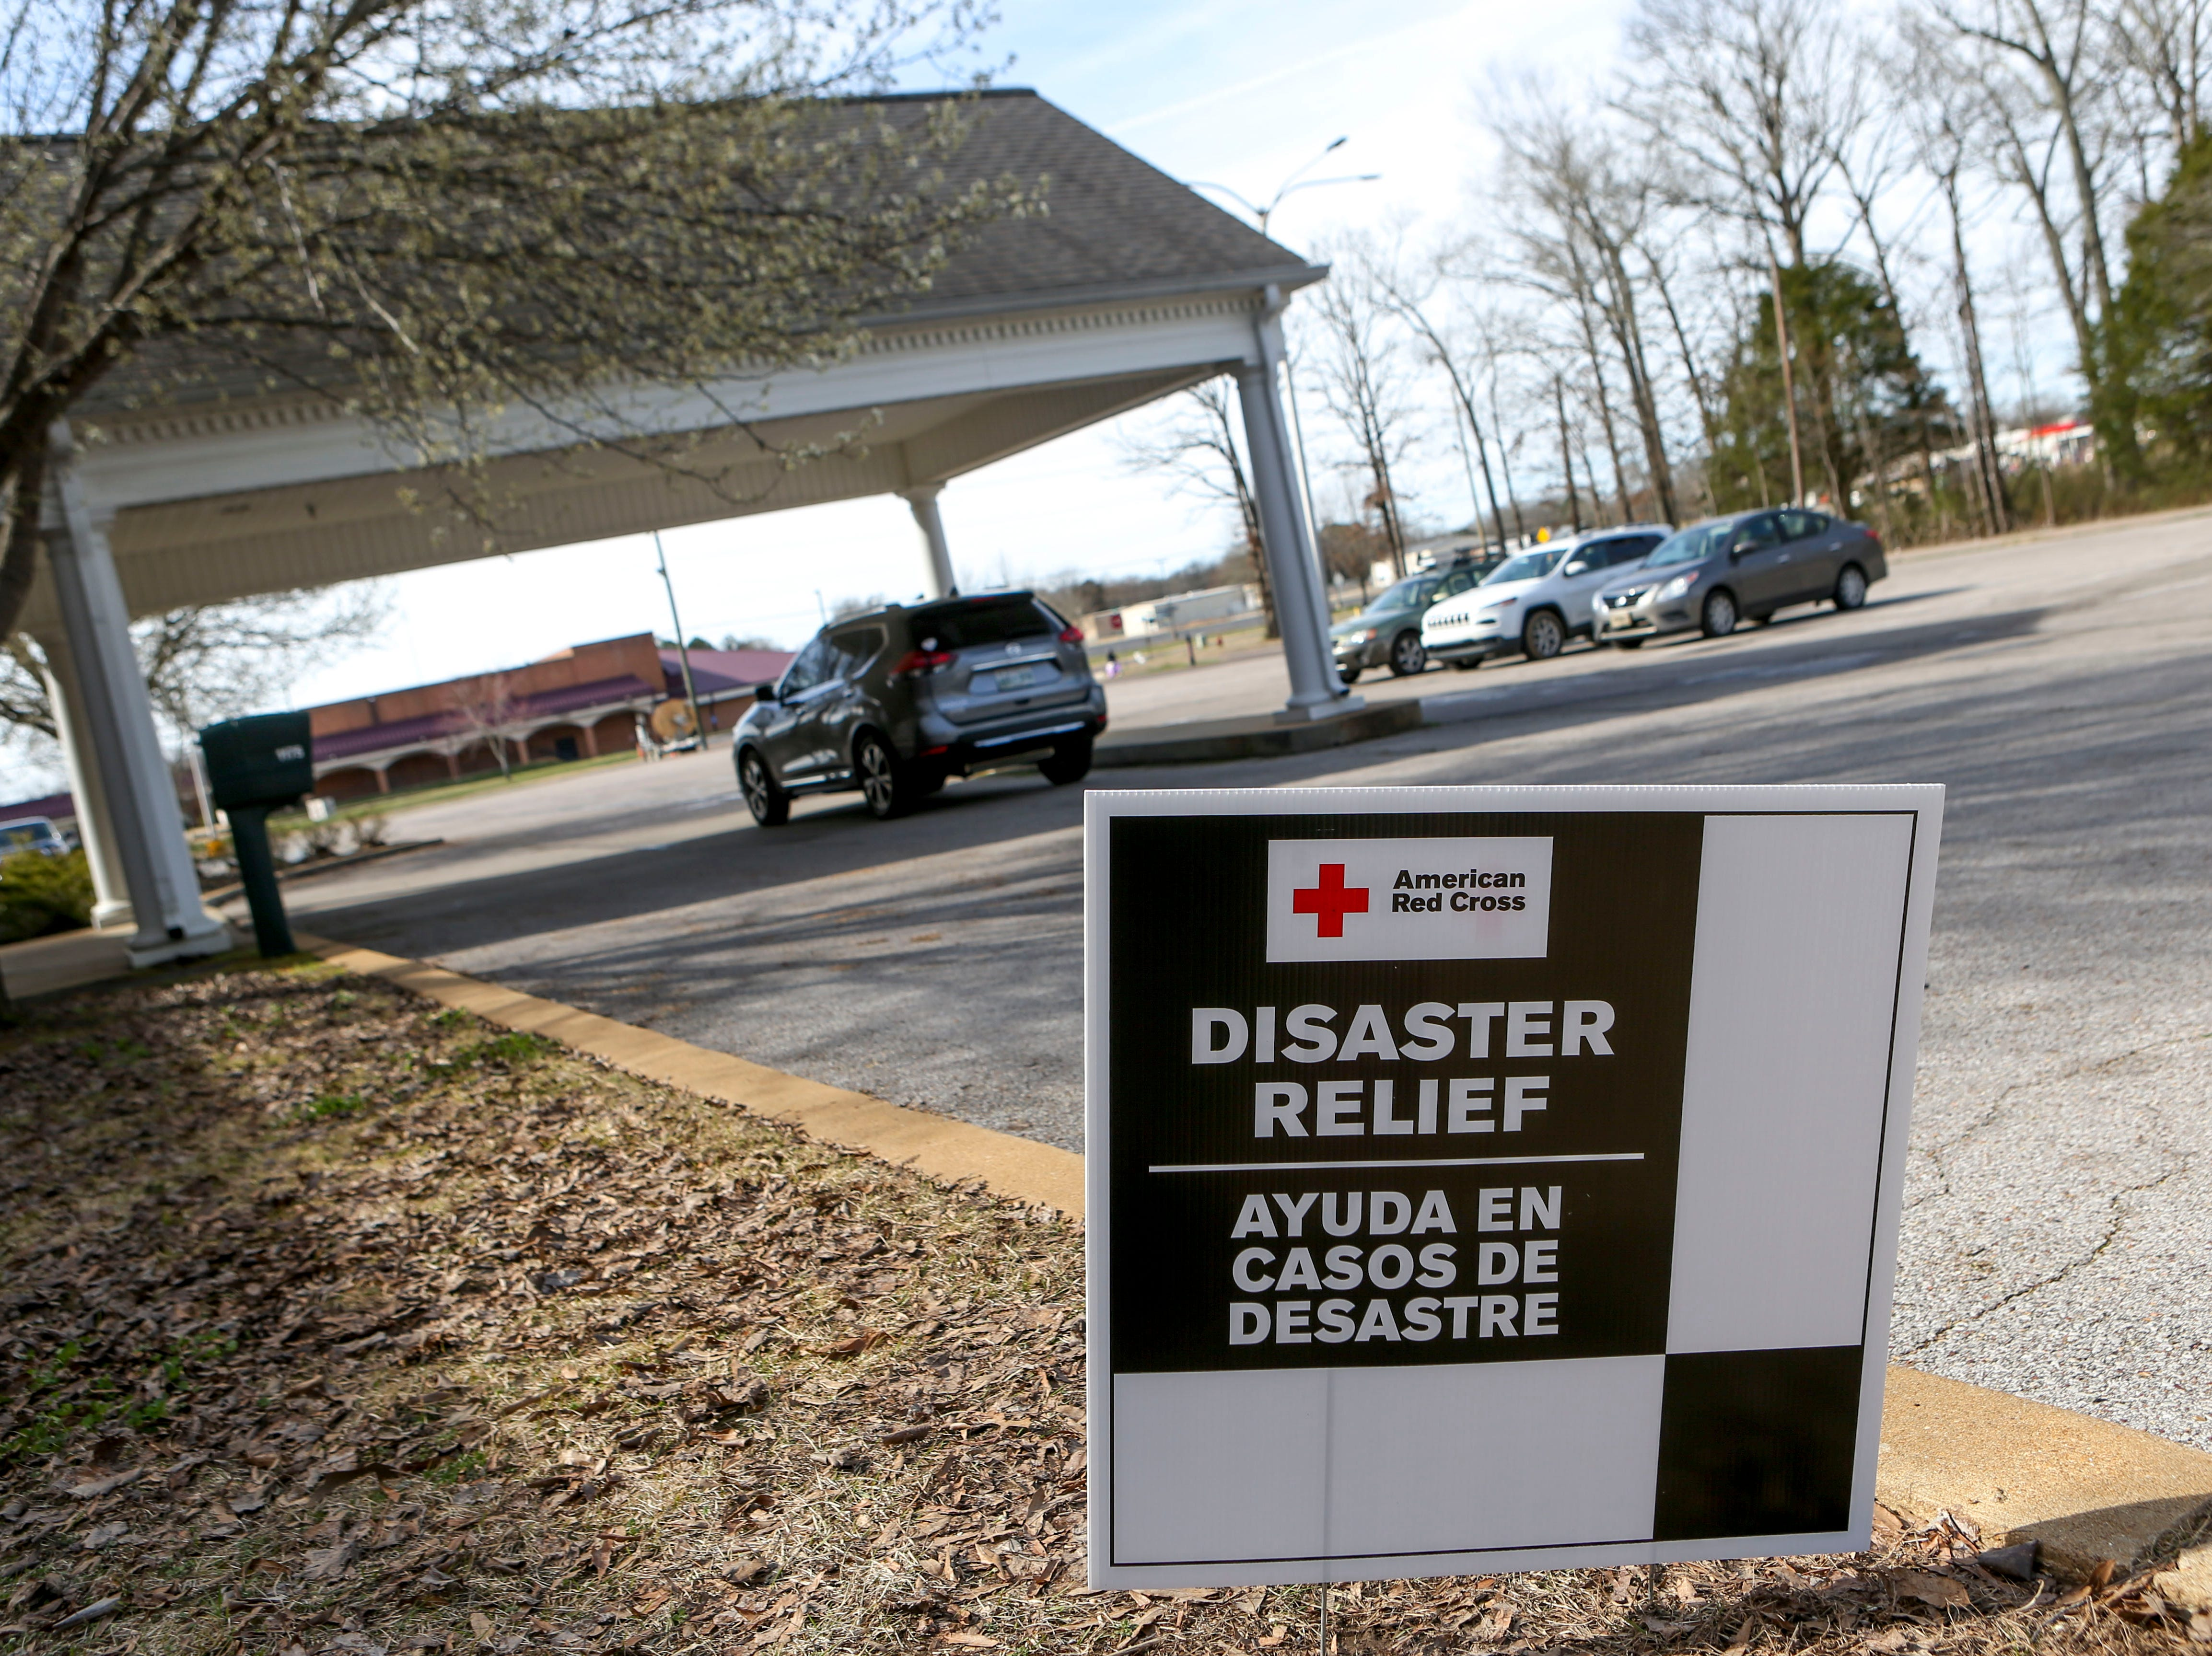 A Red Cross shelter is established at Savannah Church of Christ, in Savannah, Tenn., on Monday, Feb. 25, 2019.